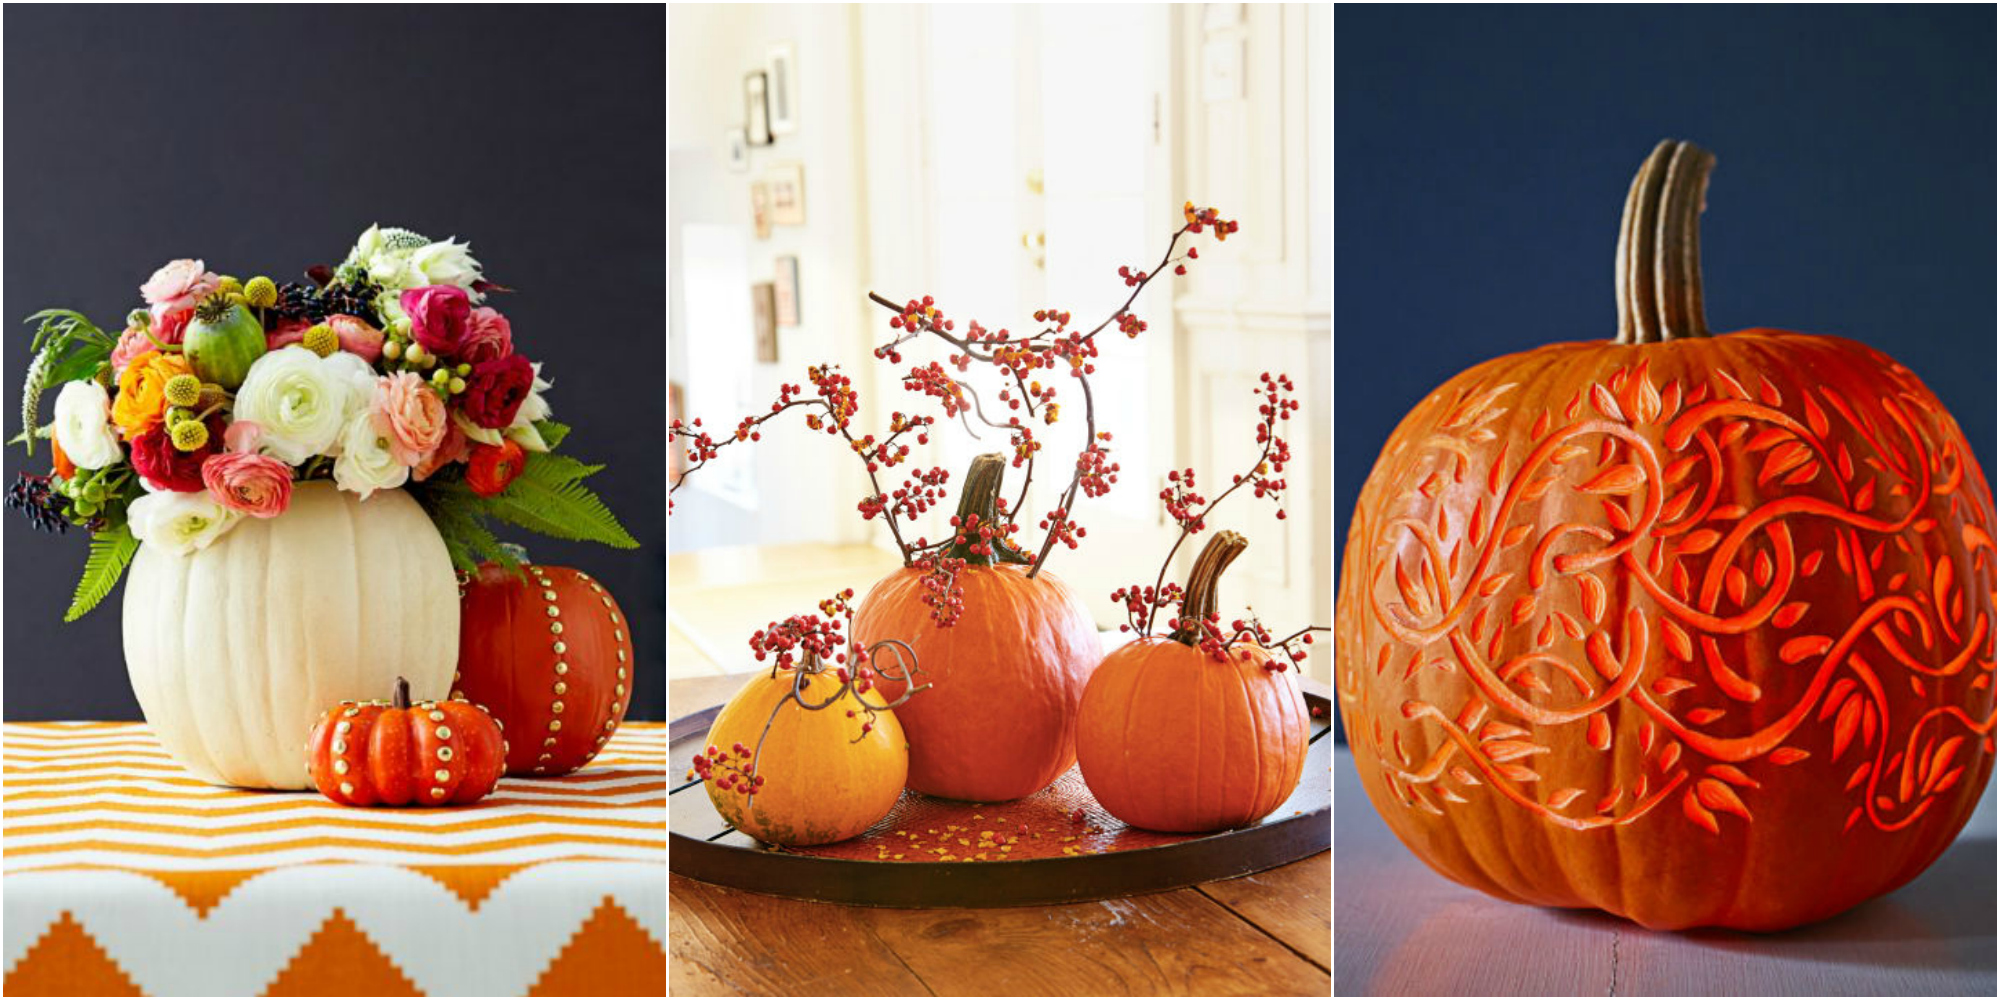 55 Pumpkin Designs We Love For 2017 Pumpkin Decorating Ideas